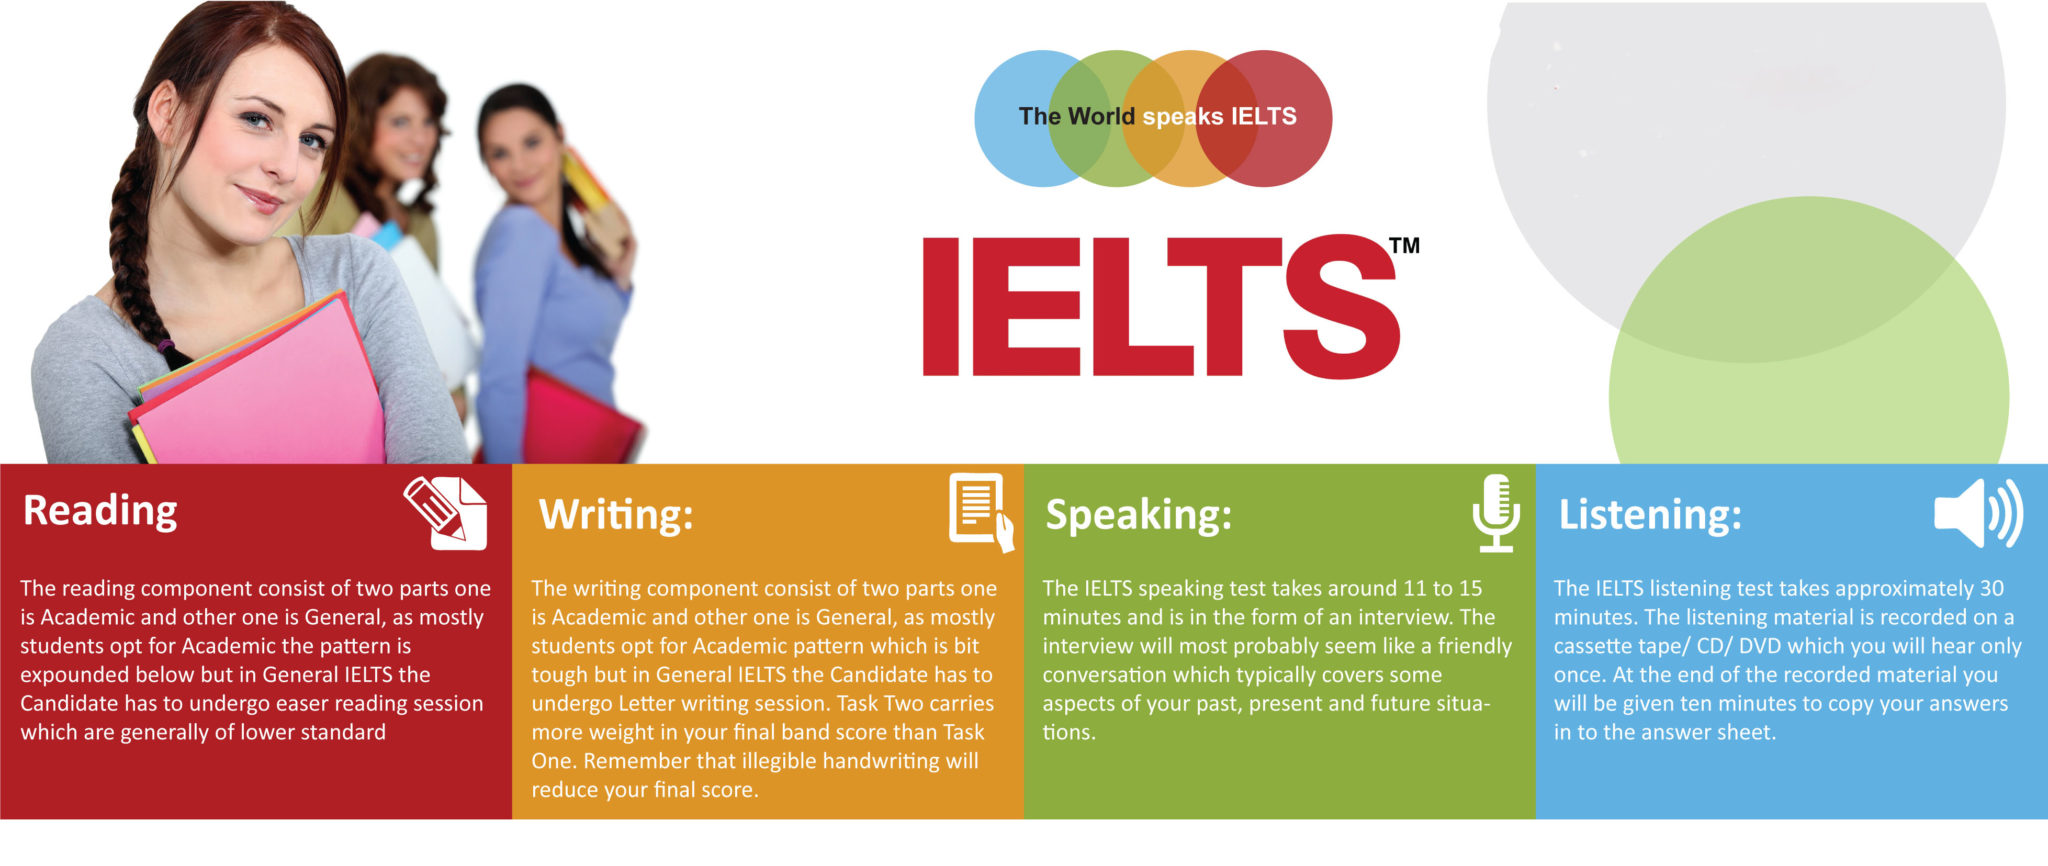 ielts dates in india Ielts is world's most popular english language test get info on hints,tips,test format & preparation advice by idp education – a proud co-owner of ielts.